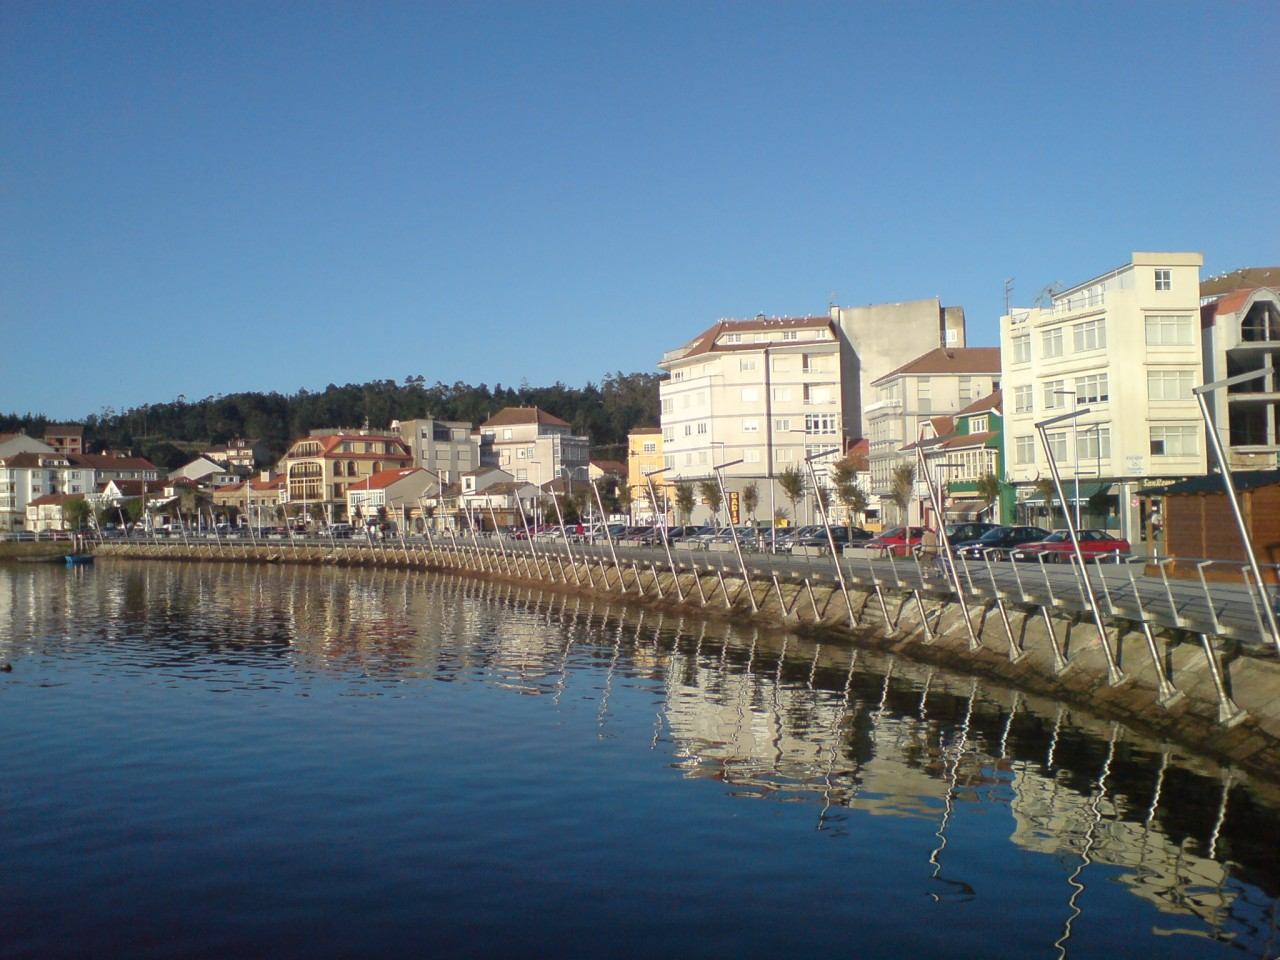 Camariñas, Galicia, Spain.  My great-grandfather's hometown.  Photo by Juan Freire, 2006.  Wikimedia Commons.